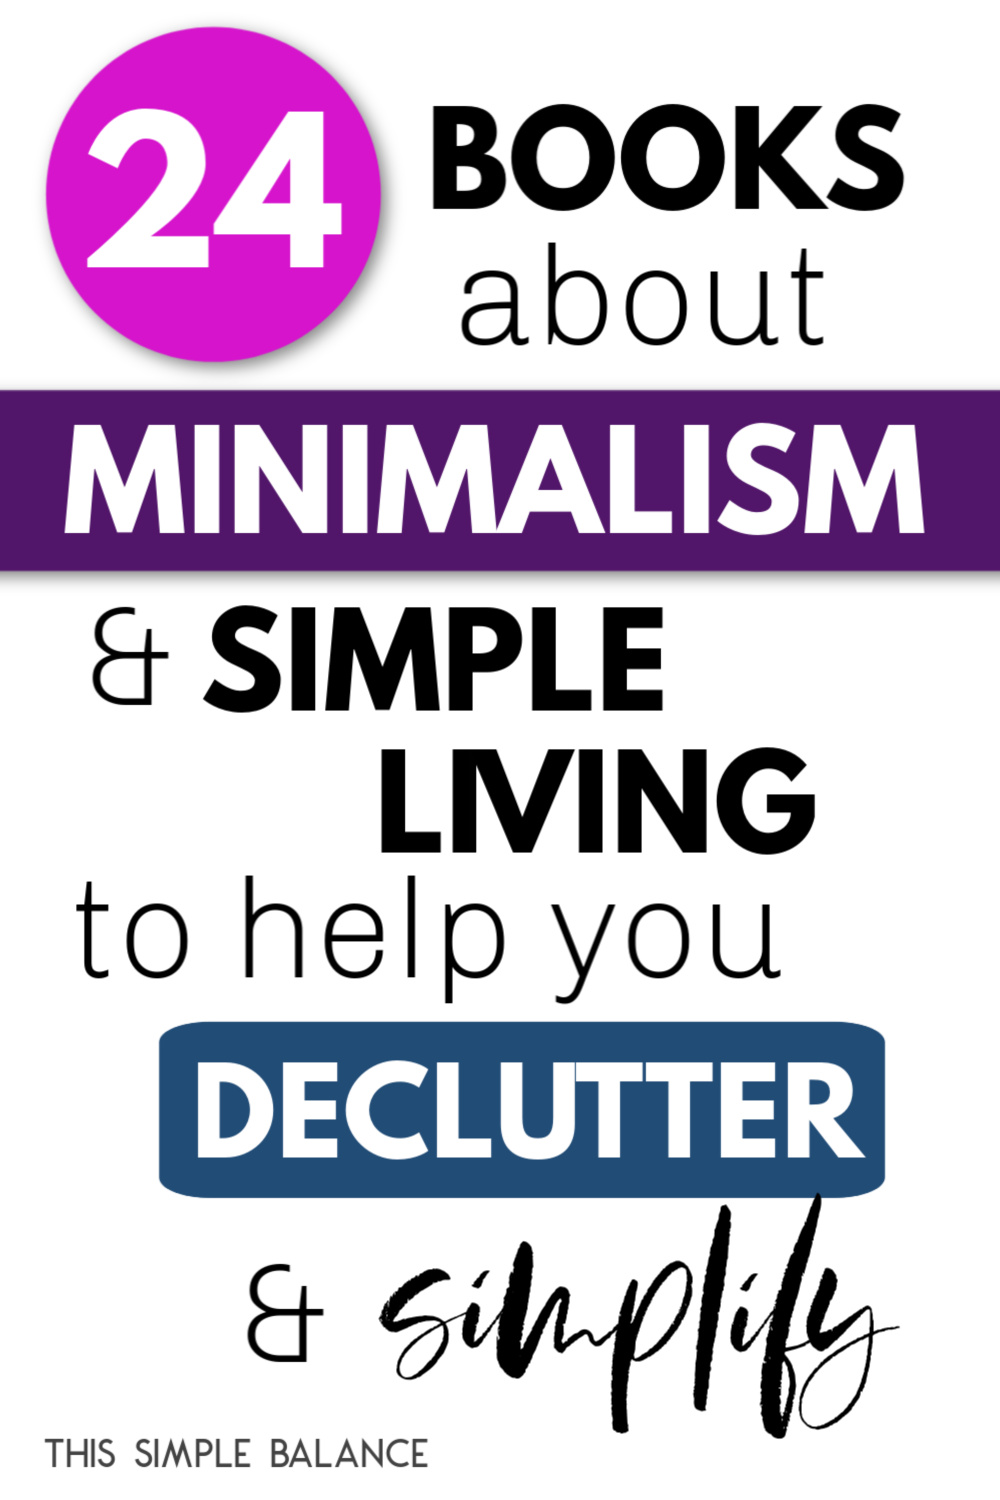 """text overlay """"24 books about minimalism & simple living to help you declutter and simplify"""""""